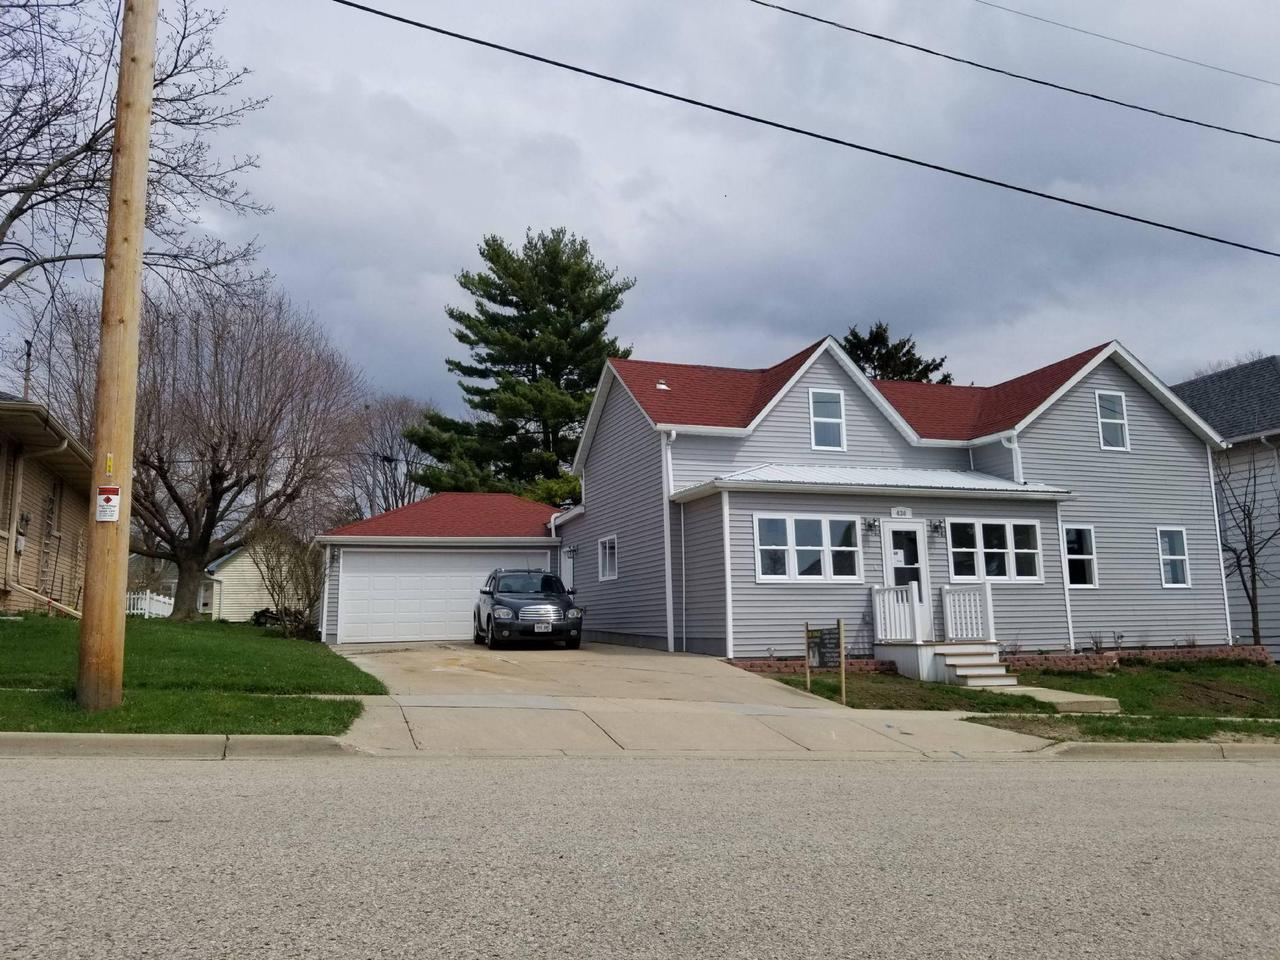 Pack you things, gather your kids, and grab the dog. Your new home is waiting for you. Great starter home for a small family. Fully gutted and rebuilt 3 bedroom, 1.5 bath, 1420 sqft, large 2.5 car garage on .17acres. Blocks from downtown. New electrical, plumbing, HVAC, windows, doors, siding, flooring, cabinets, appliances, EVERYTHING! Features a large mud room/ first floor laundry, walk in pantry, heated front enclosed porch, attached workshop and more. Dont miss out on a truly move in ready home. Call today for your private showing.